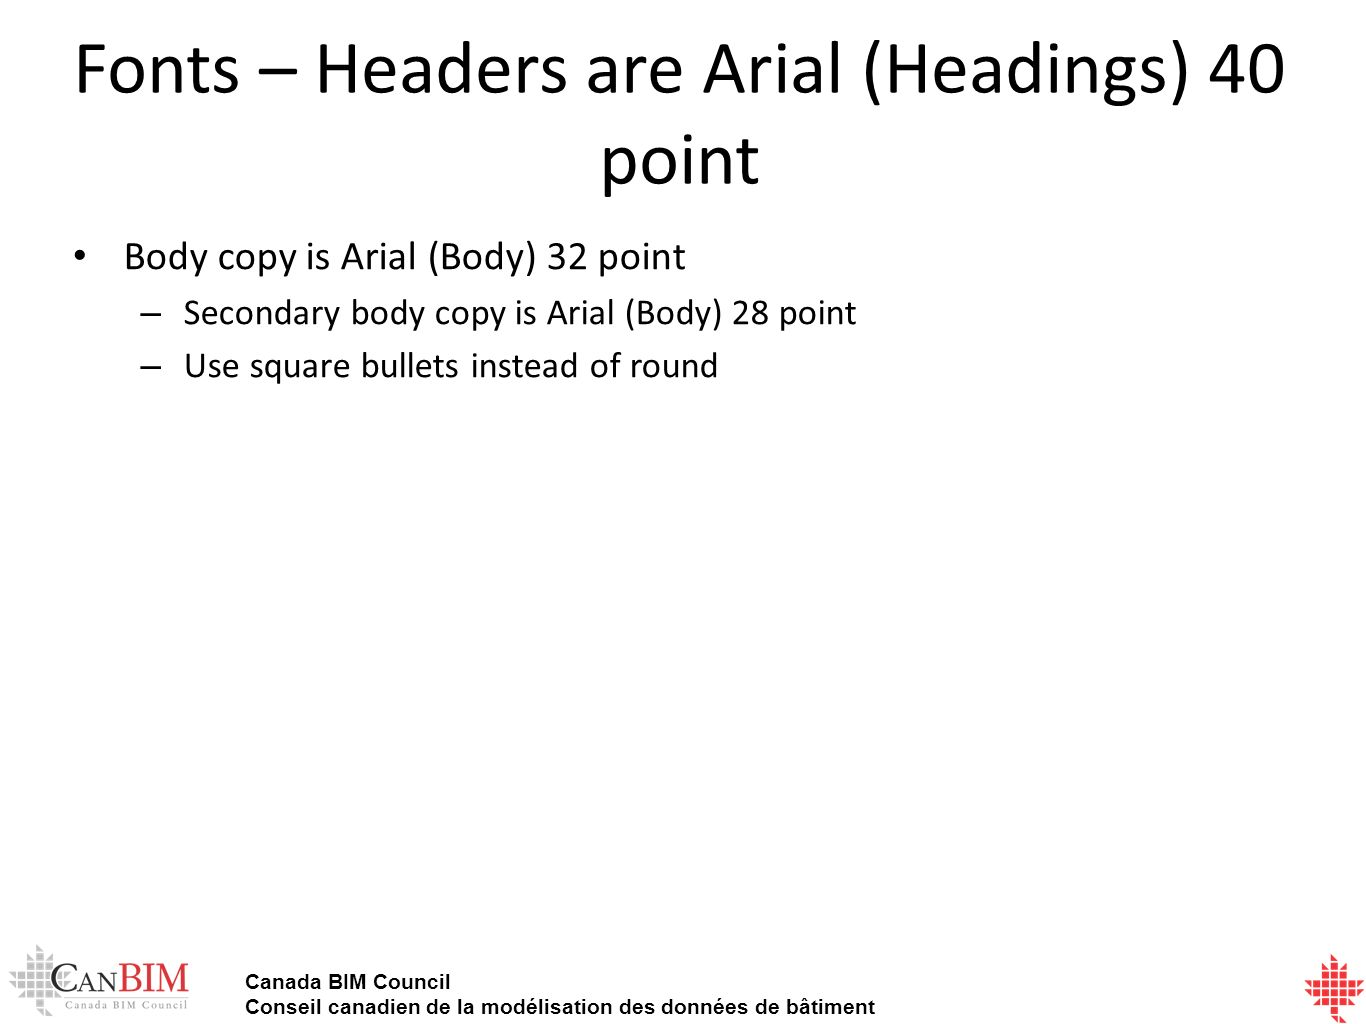 Canada BIM Council Conseil canadien de la modélisation des données de bâtiment Fonts – Headers are Arial (Headings) 40 point Body copy is Arial (Body) 32 point – Secondary body copy is Arial (Body) 28 point – Use square bullets instead of round